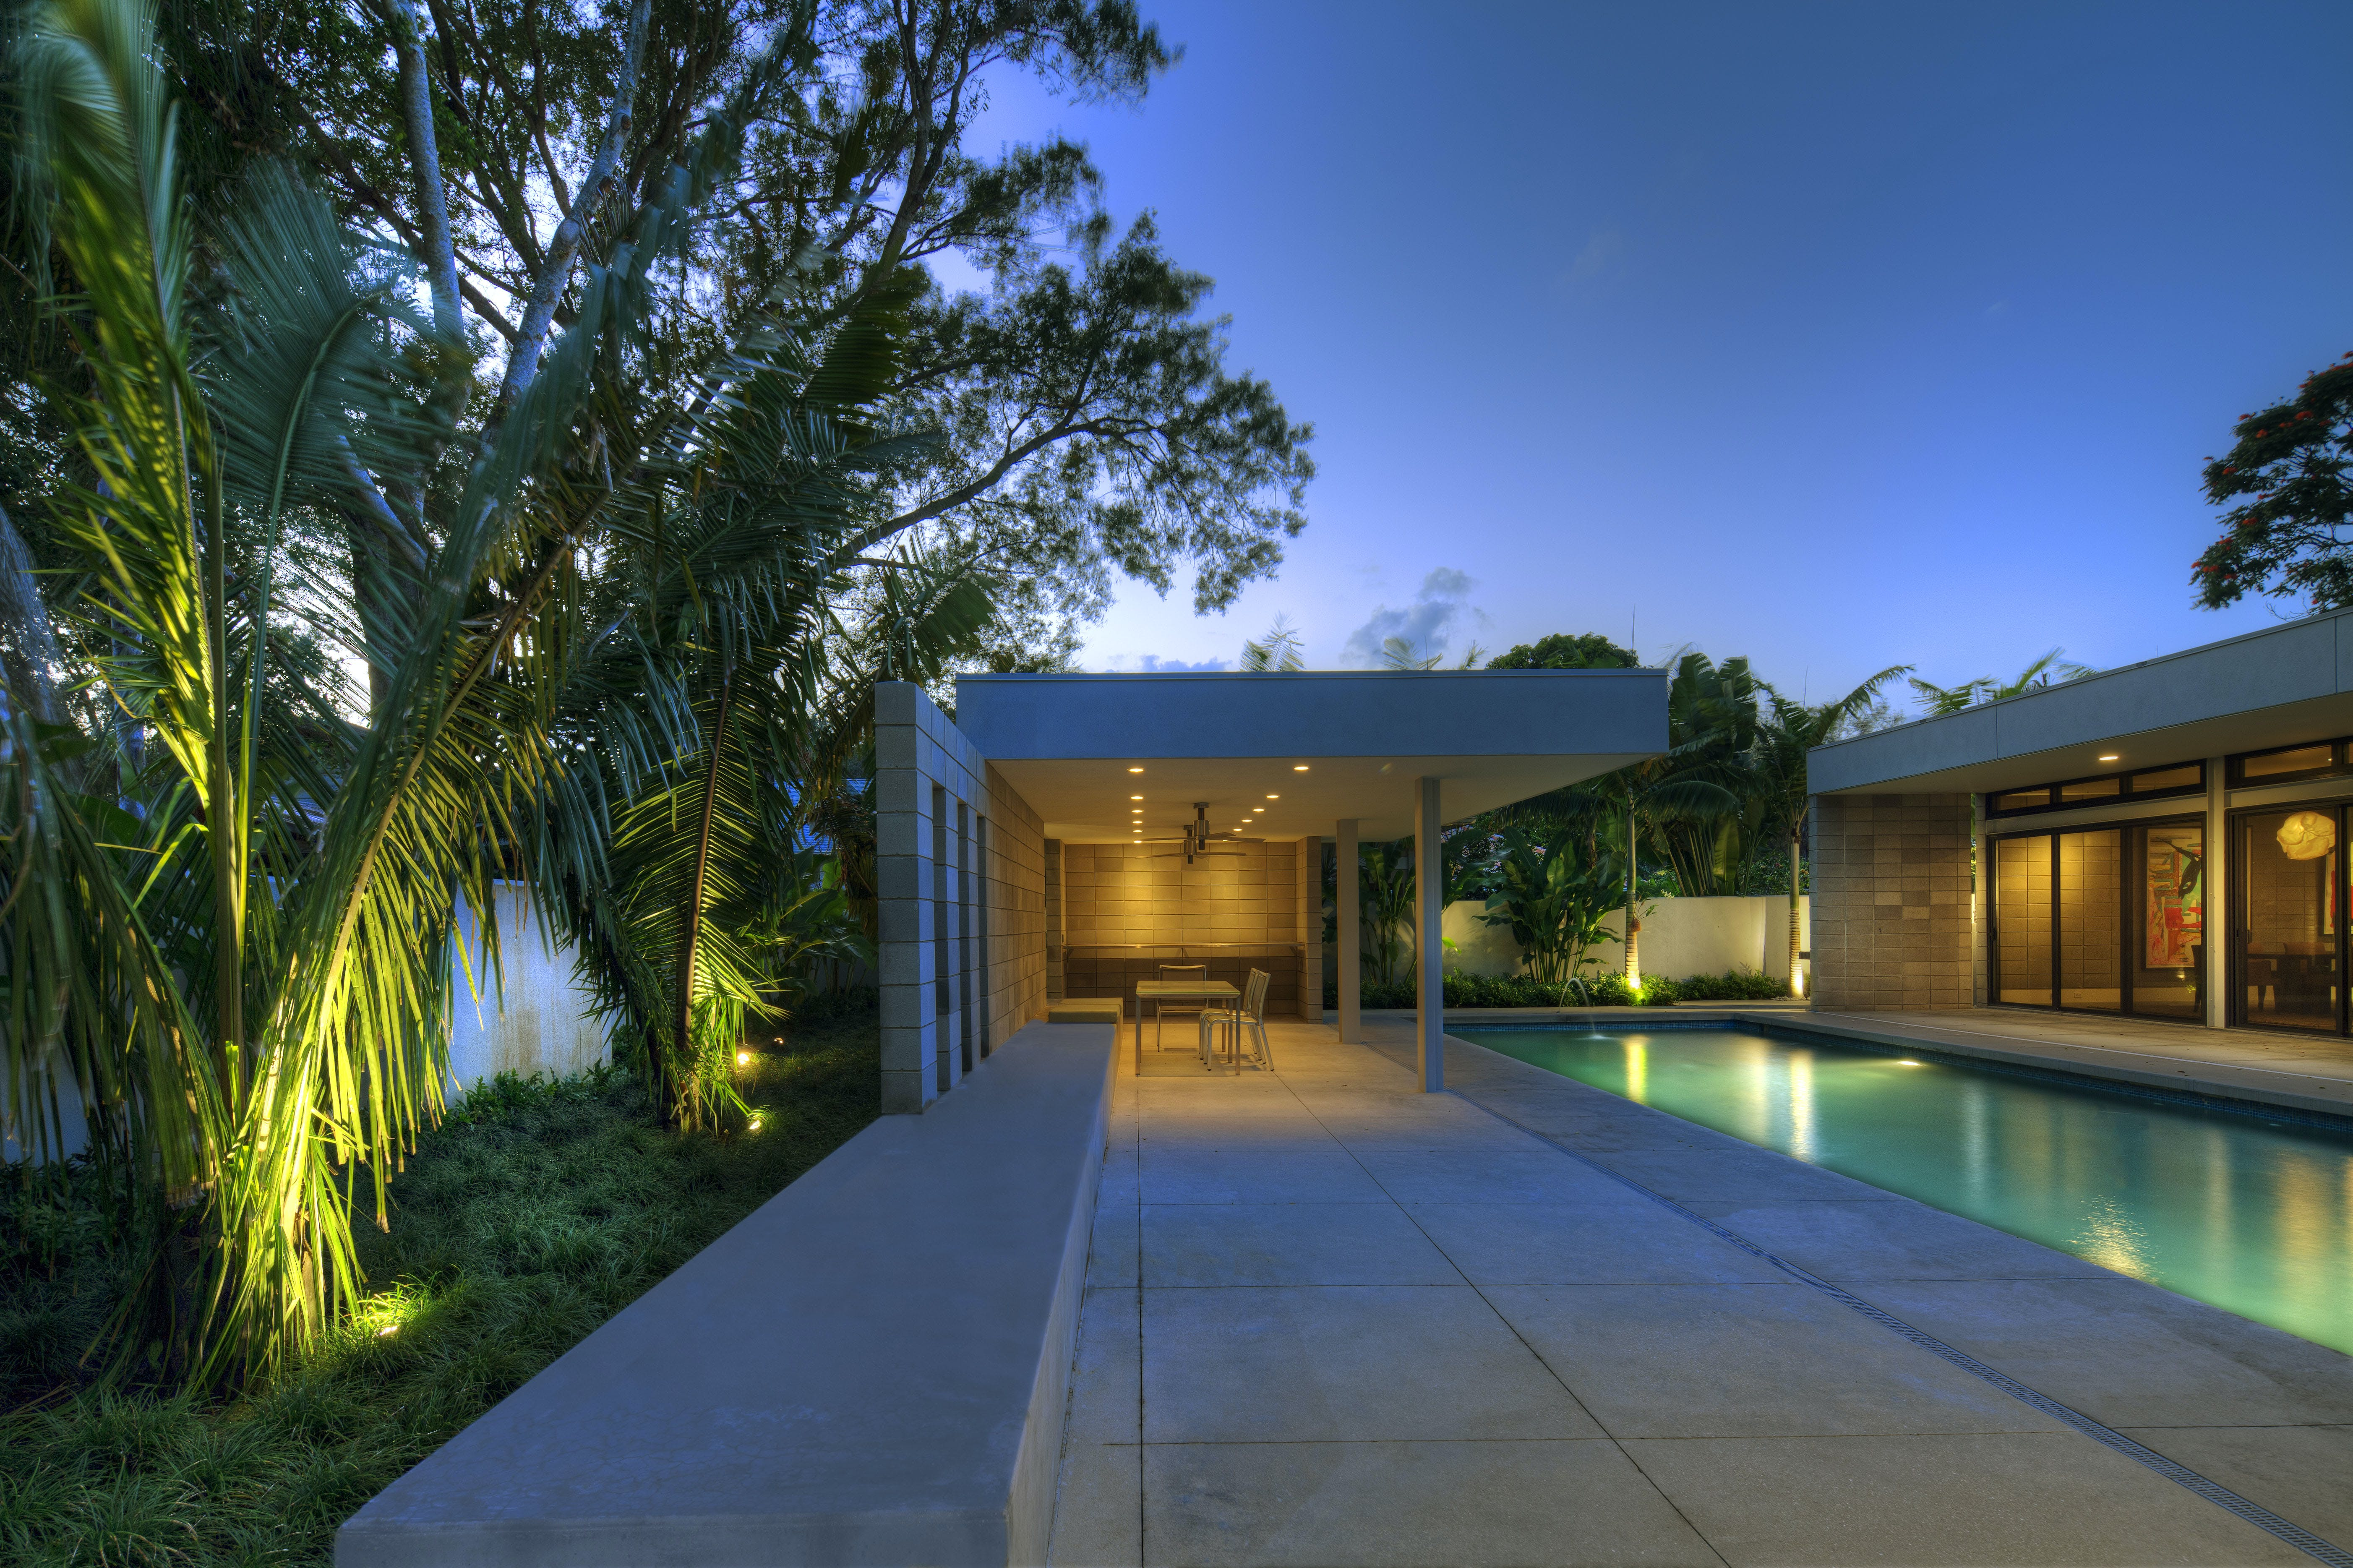 Sarasota Mcm Renovation Dwy Landscape Architects Archinect